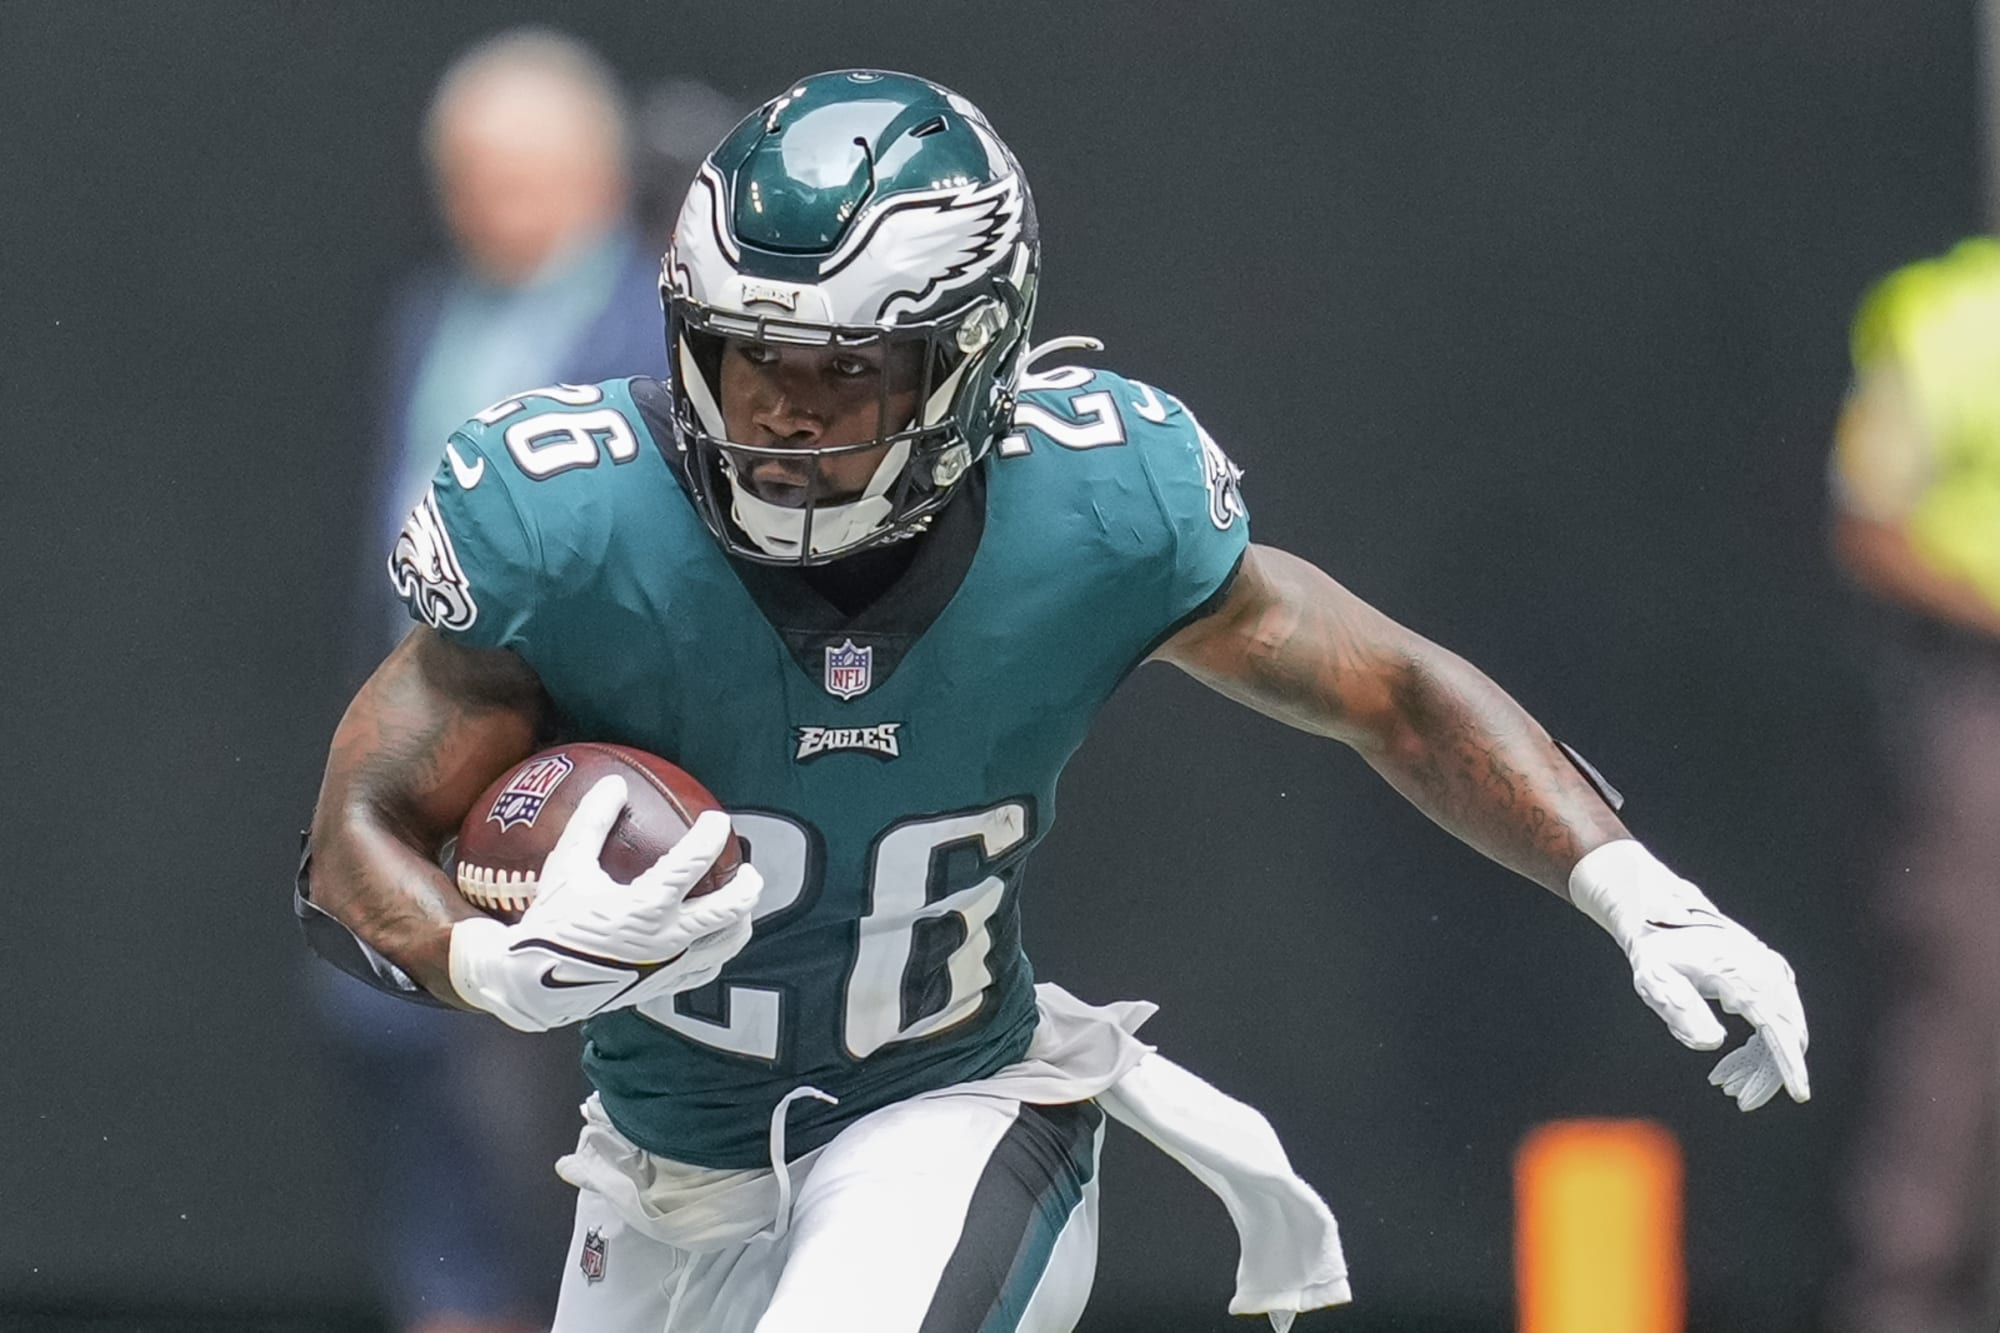 Eagles RB Miles Sanders will be better long-term than Saquon Barkley